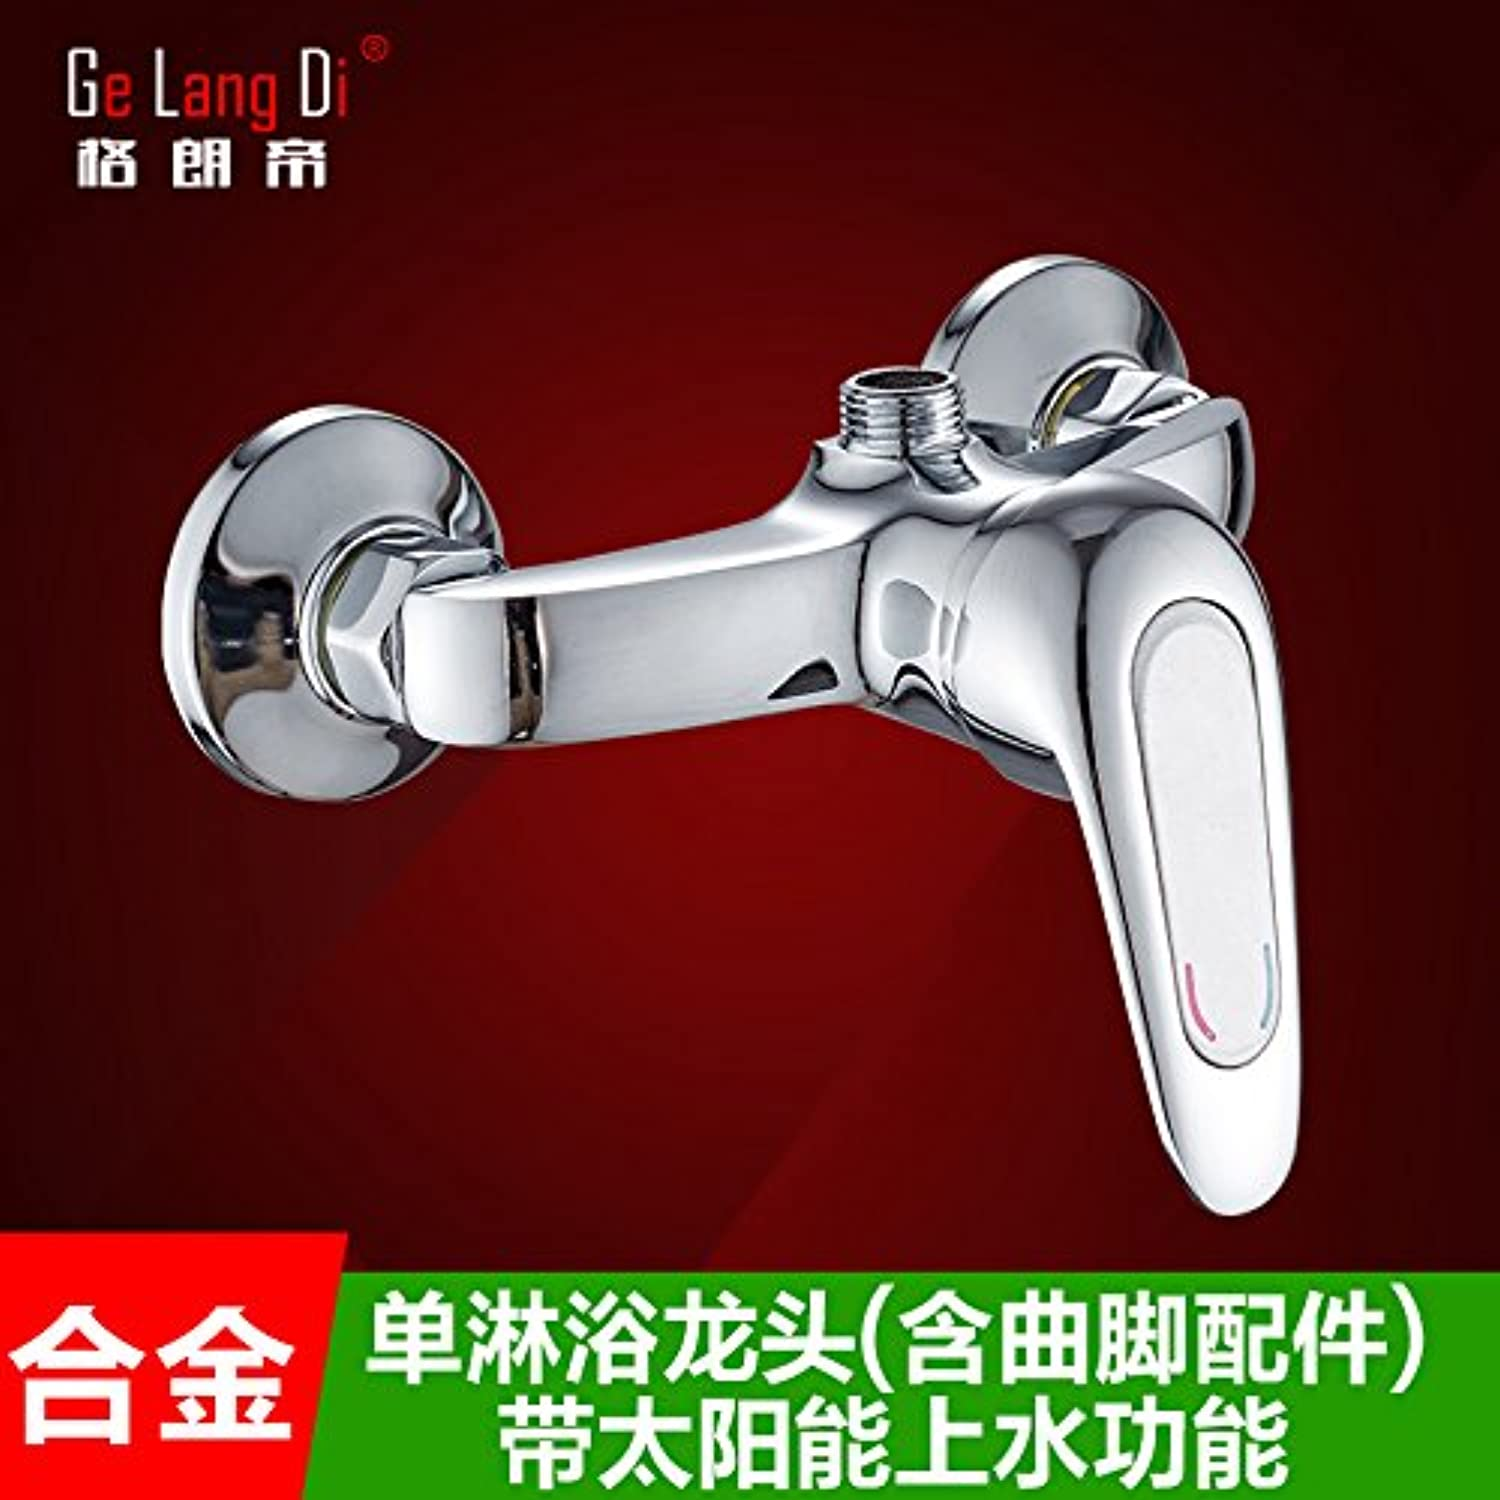 Gyps Faucet Tap 4-Port Flat in the Wall Private Bath Tap with Hot and Cold Water Shower that the Tap Water Mixing Valve with Solar Energy (Opening)